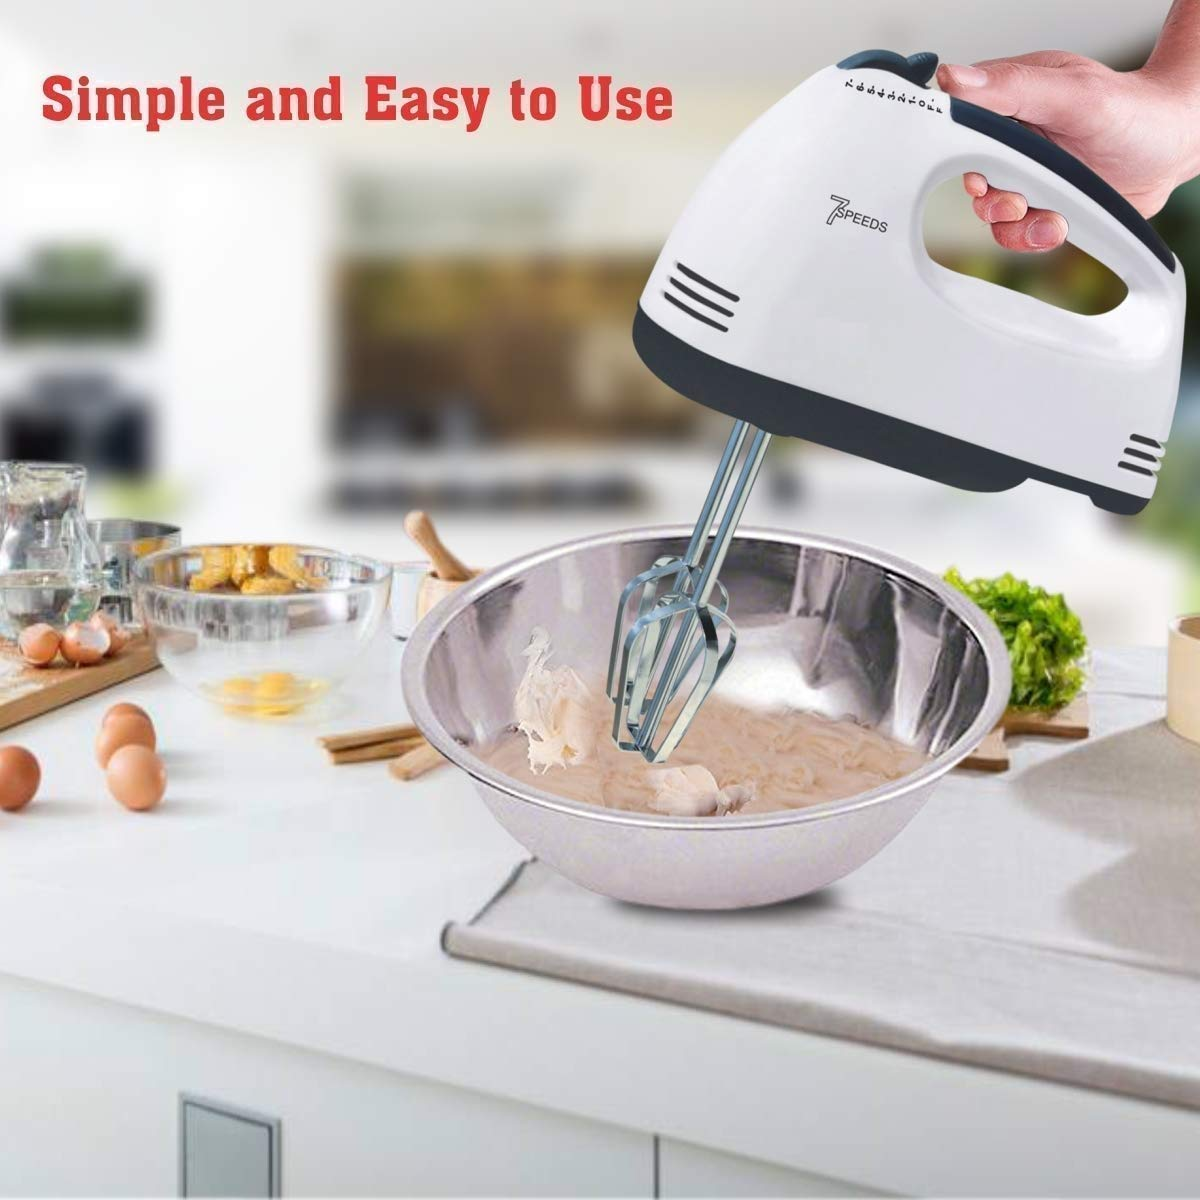 Compact Hand Electric Mixer/Blender for Whipping/Mixing with Attachments